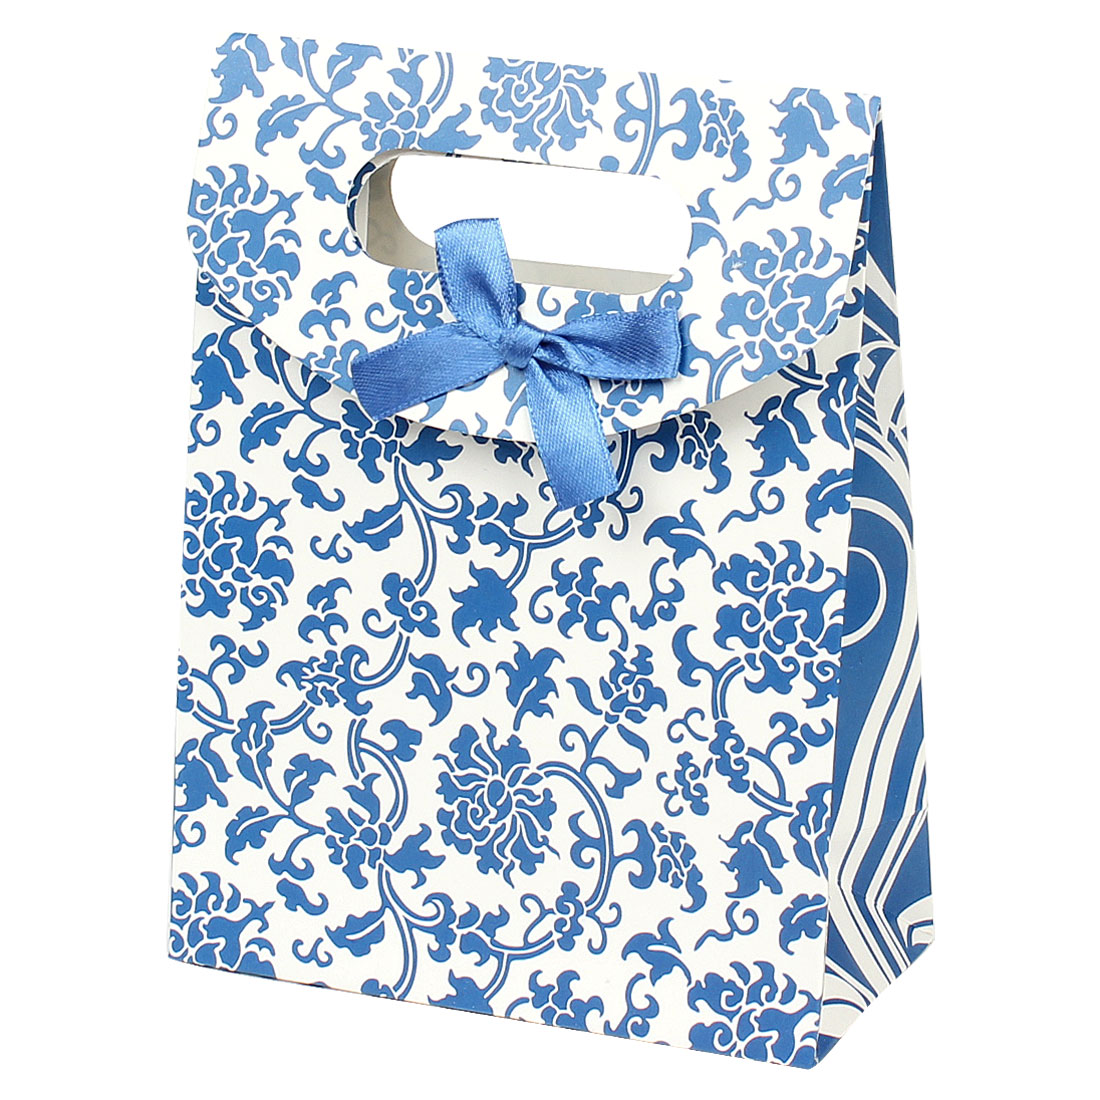 Bow Tie Blue Floral Vines Printed Gift Paper Foldable Bag Holder White